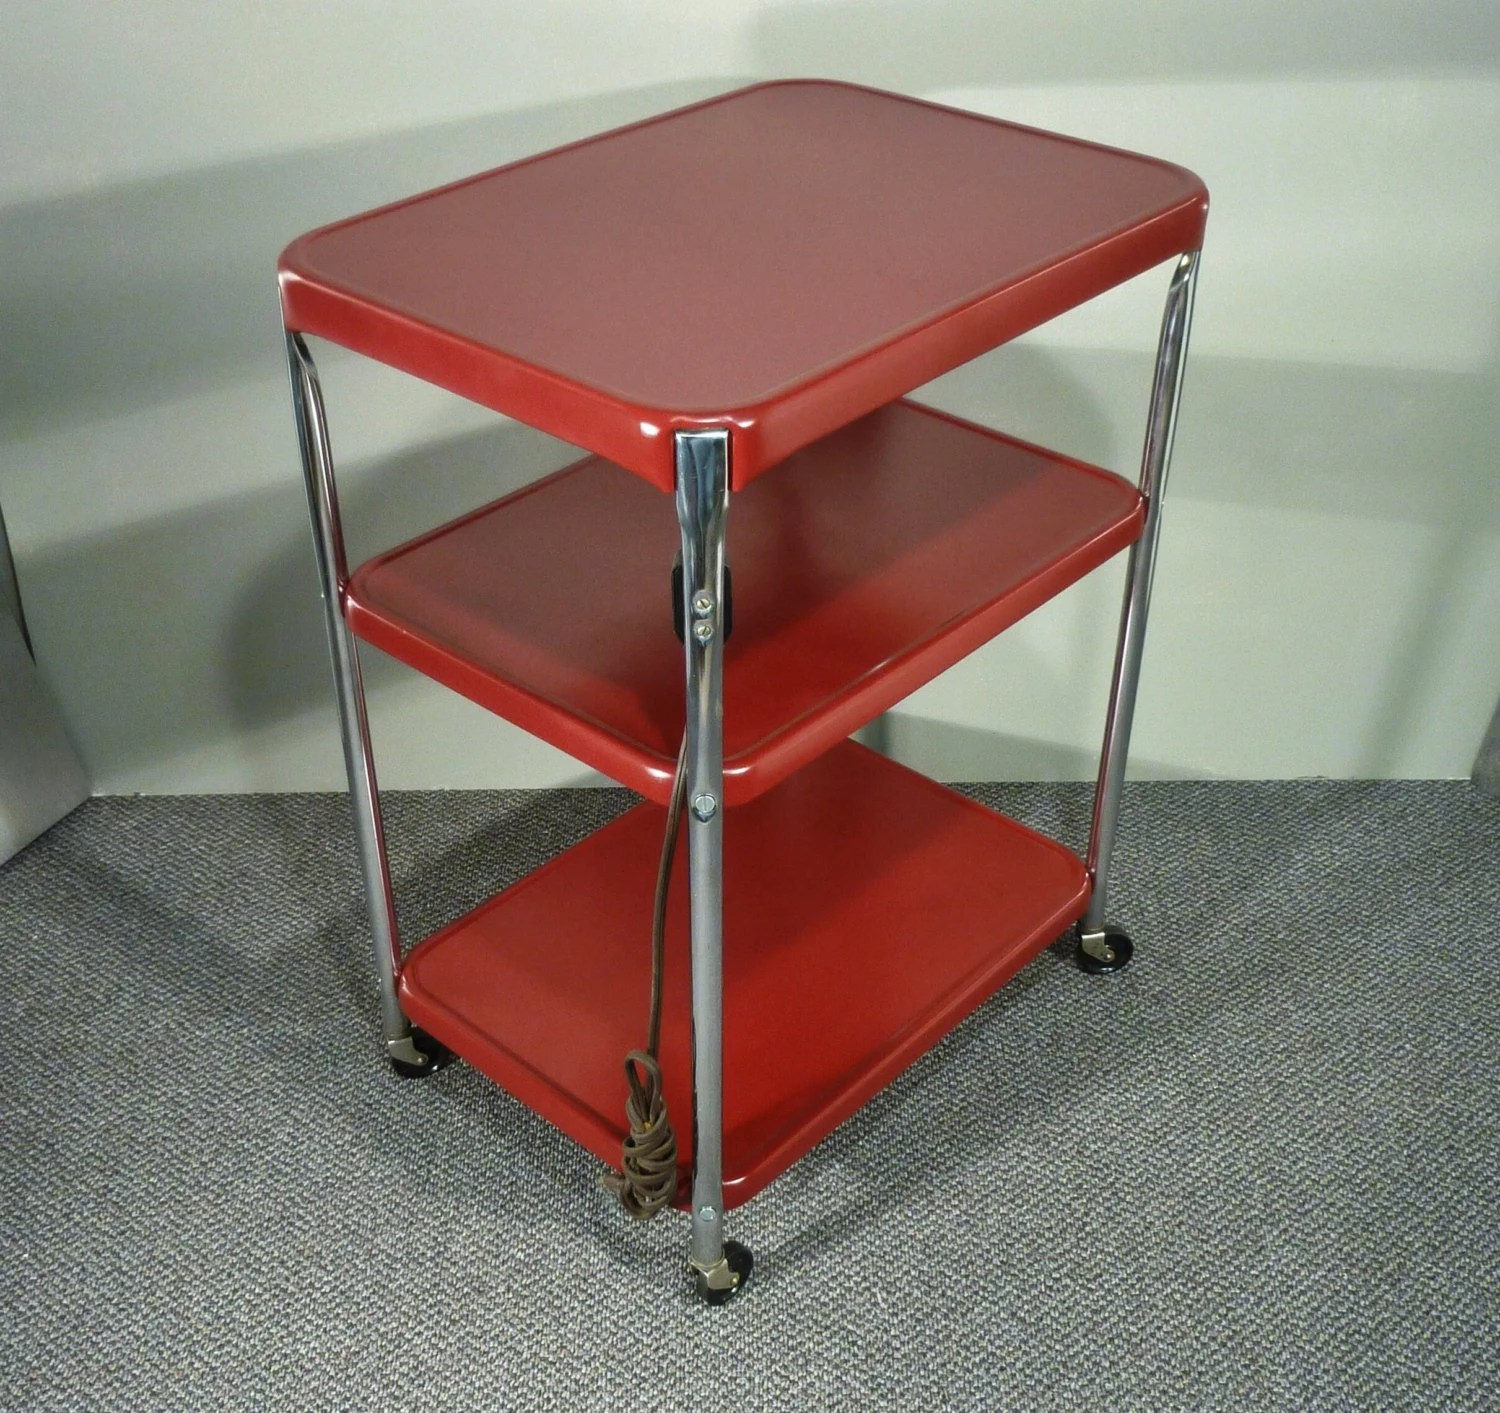 cosco kitchen stool chair steel with pad upcycle metal cart vintage rolling